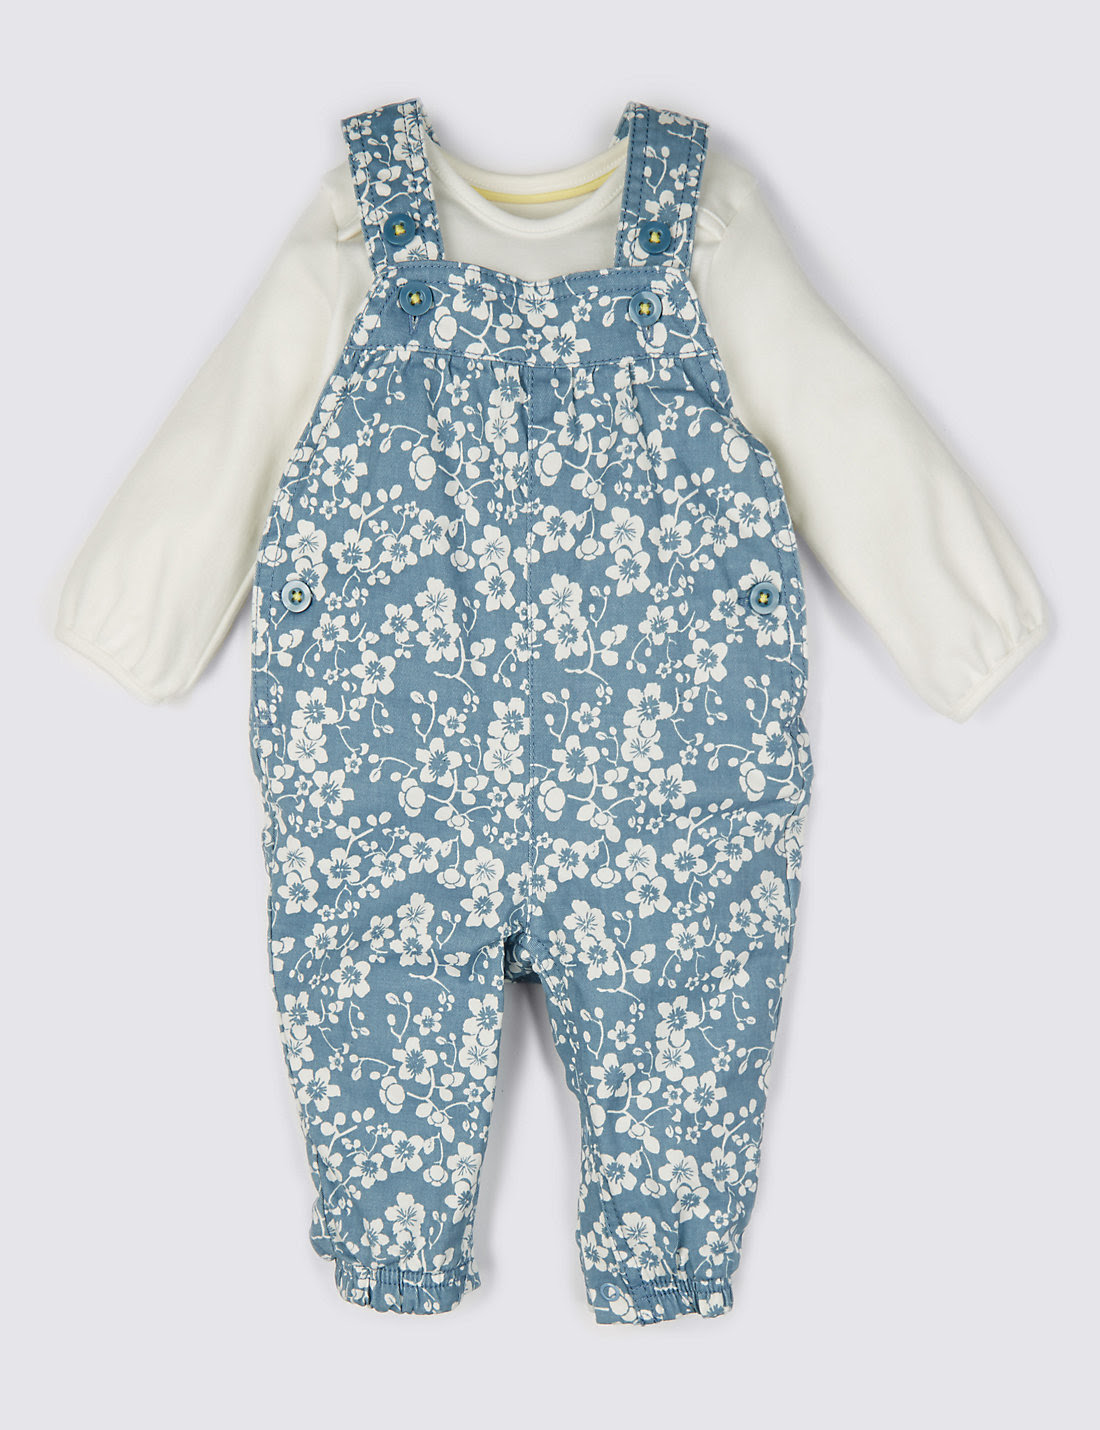 2 Piece Cotton Rich Bodysuit & Dungaree Outfit